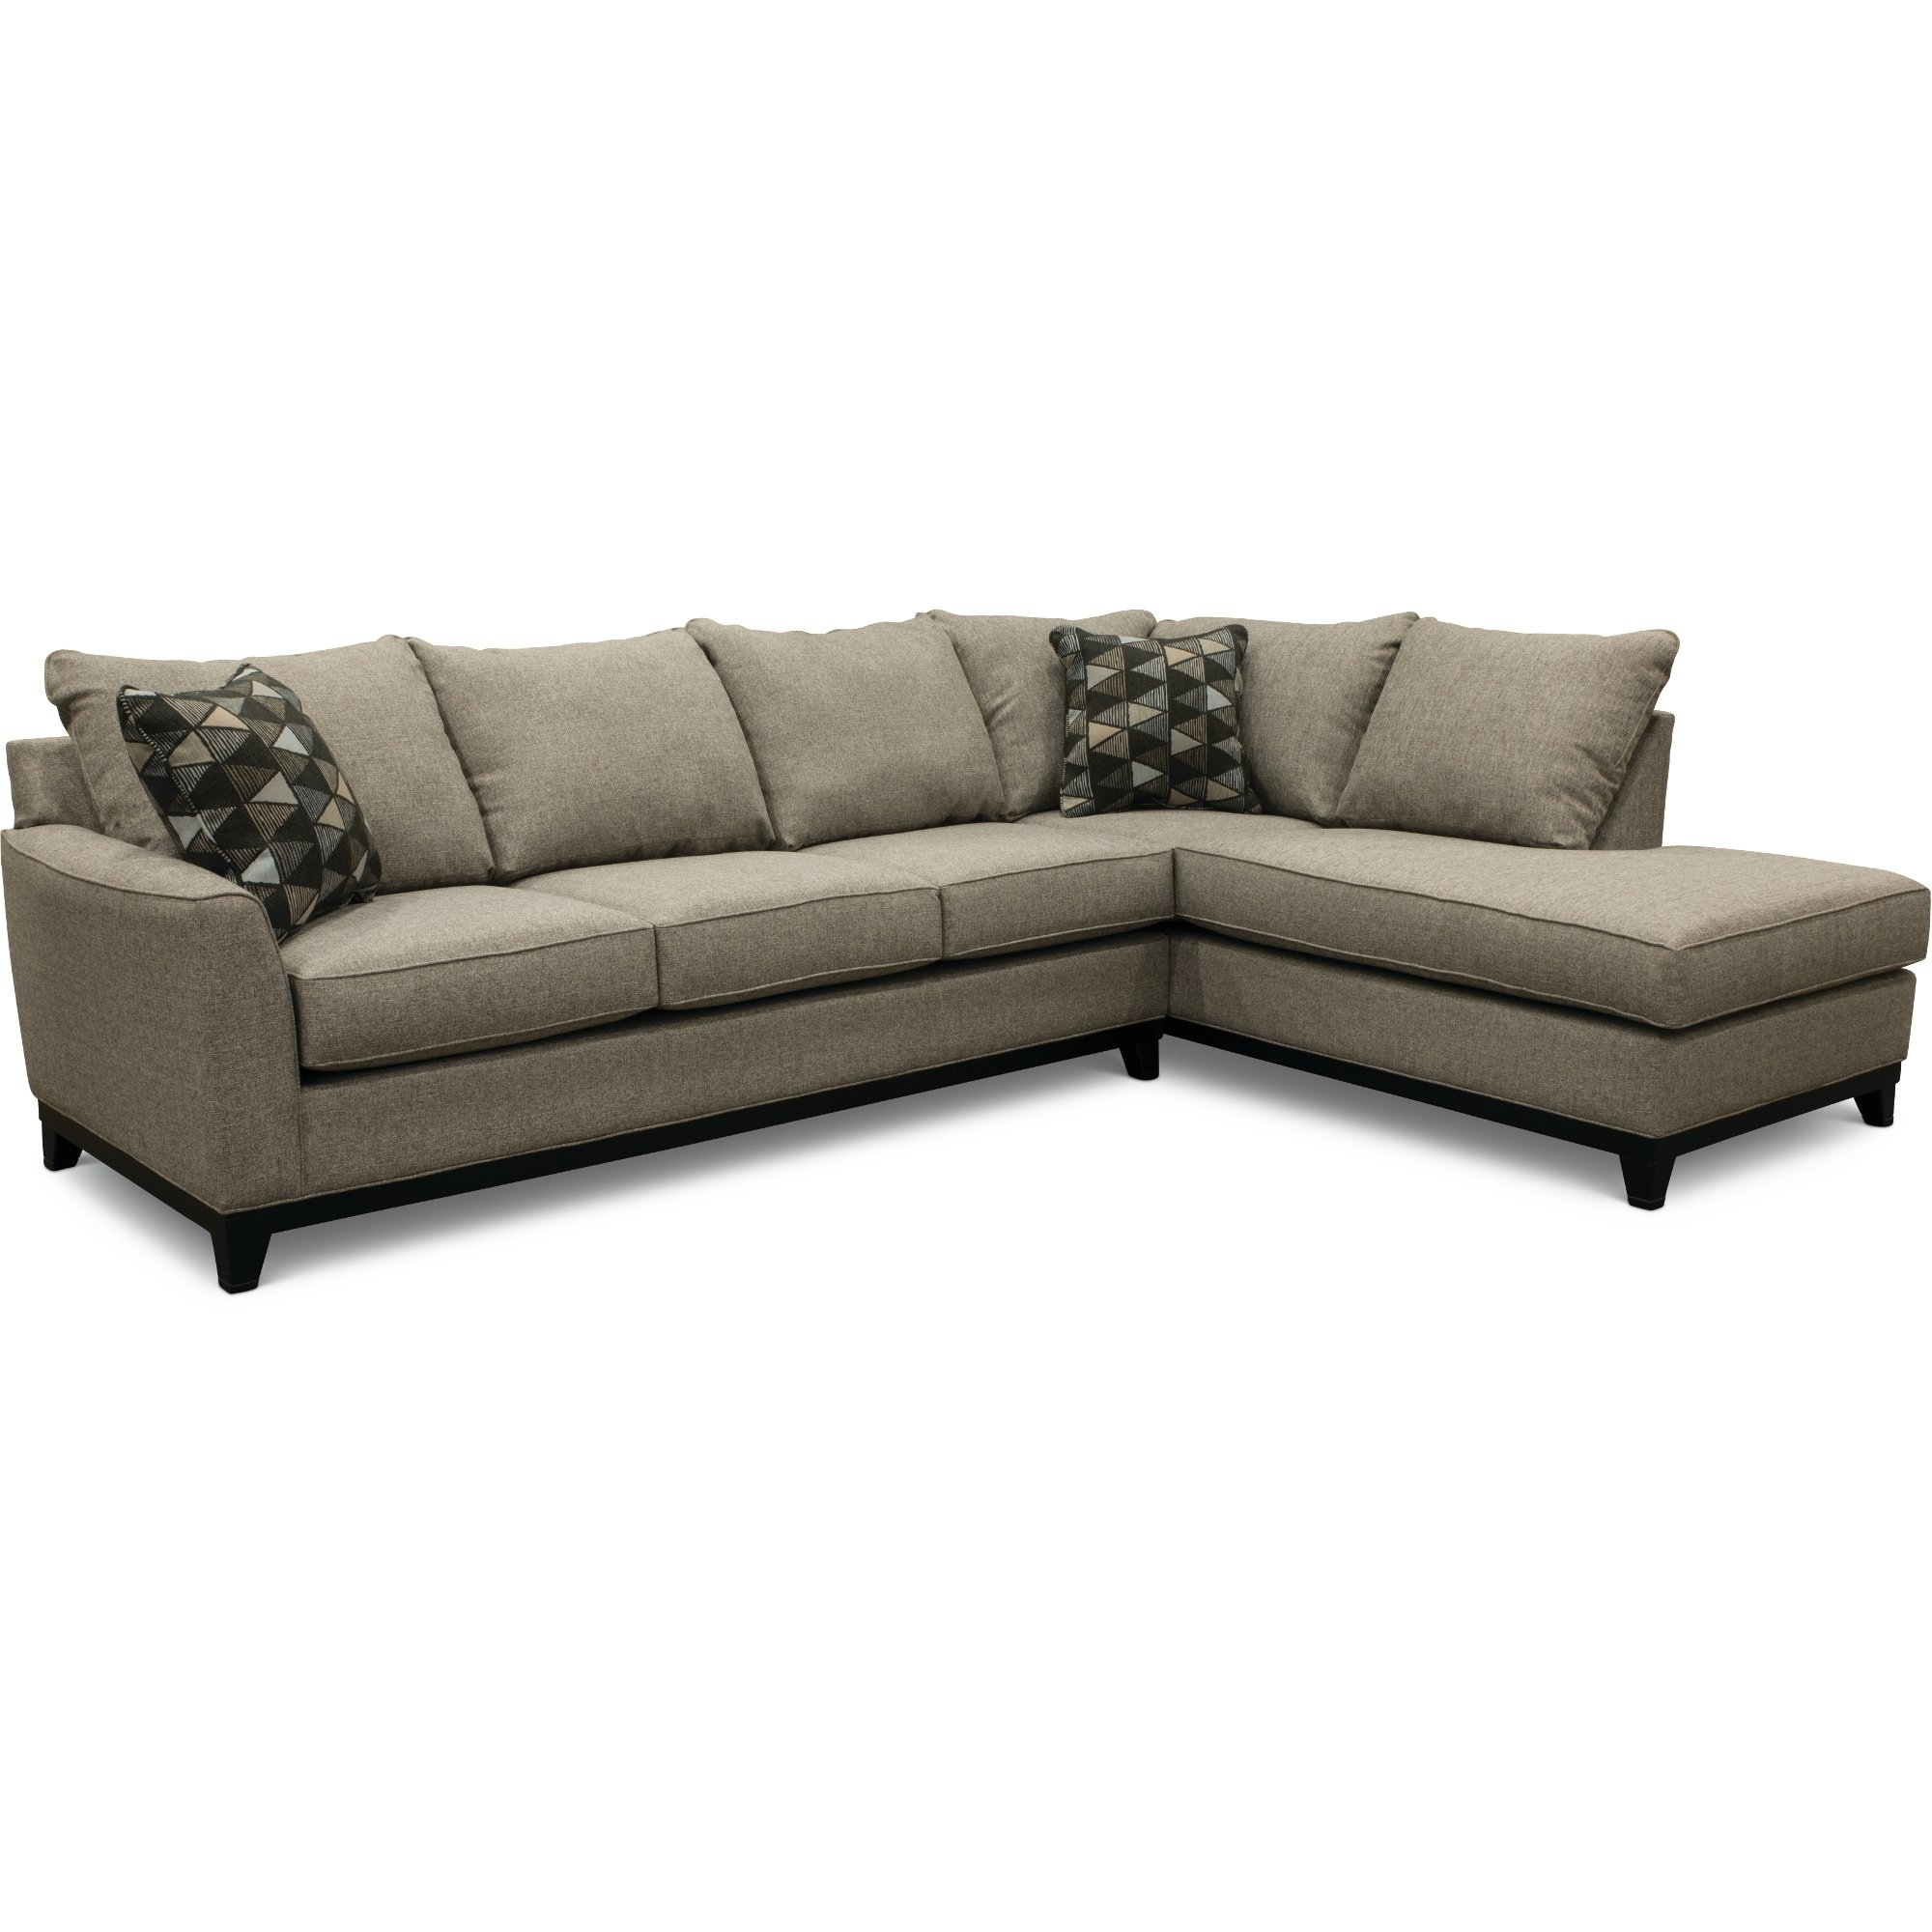 Casual Contemporary Slate Gray 2 Piece Sectional Sofa – Emerson | Rc With Regard To Cosmos Grey 2 Piece Sectionals With Laf Chaise (View 25 of 25)